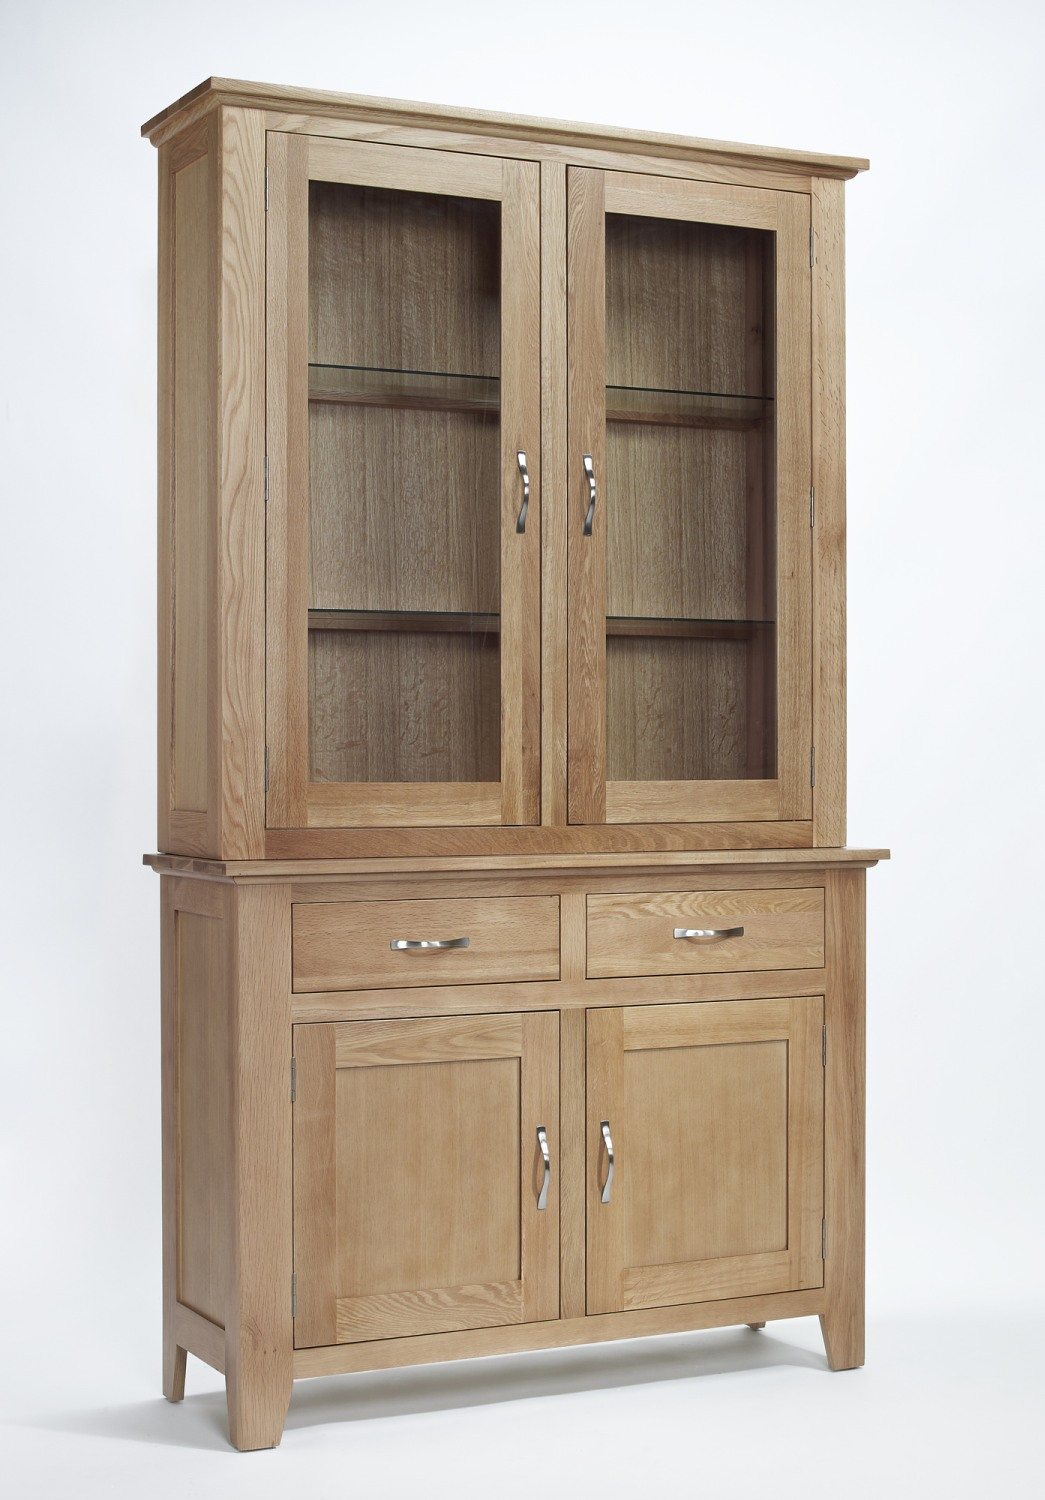 Compton solid oak furniture dining room dresser display for Dining room dresser